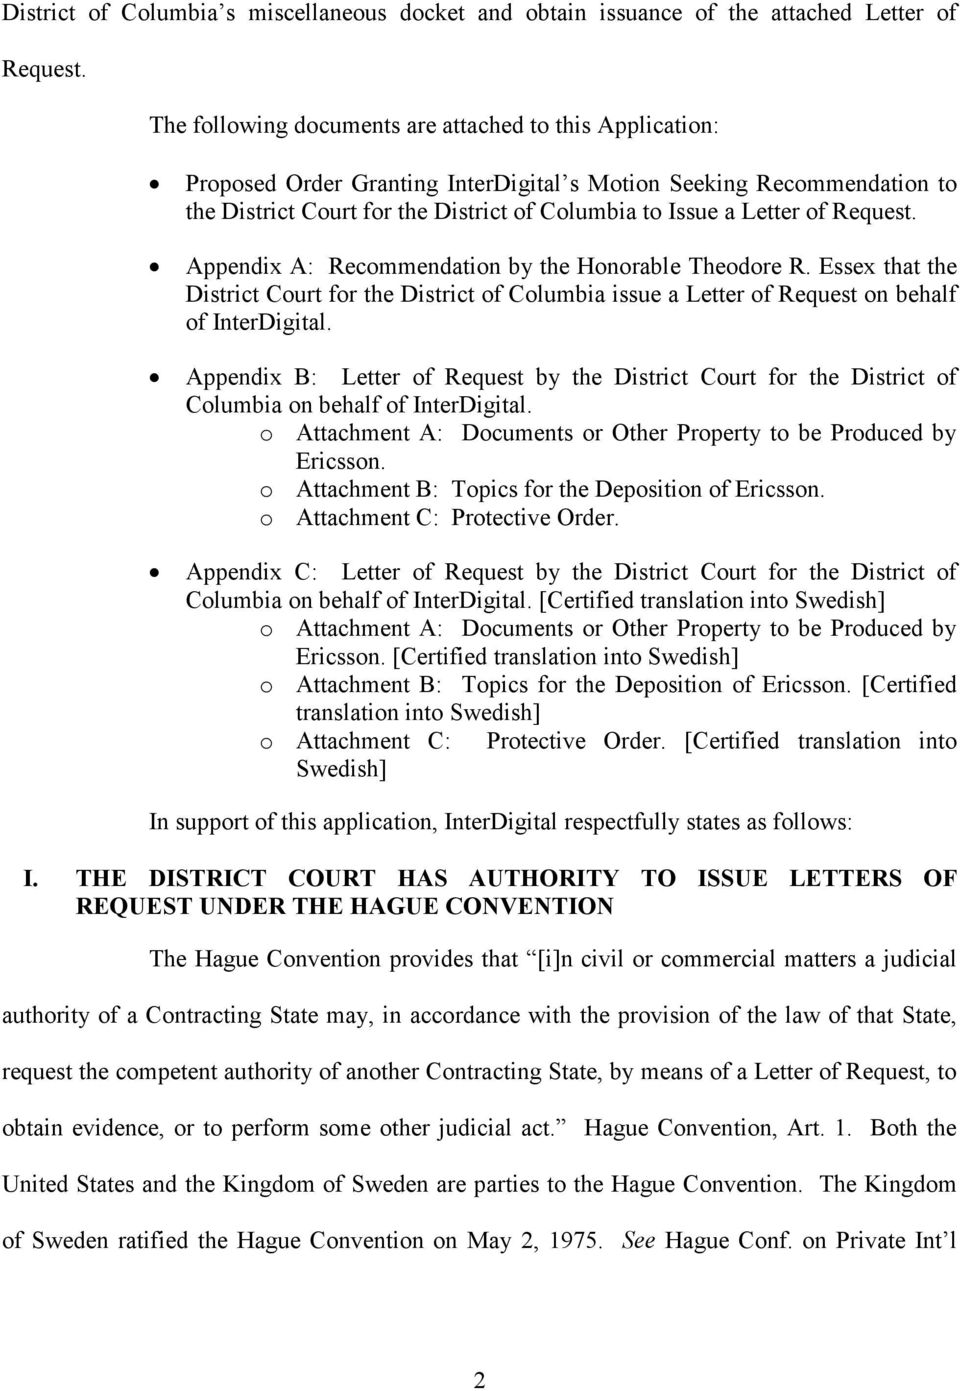 Request. Appendix A: Recommendation by the Honorable Theodore R. Essex that the District Court for the District of Columbia issue a Letter of Request on behalf of InterDigital.